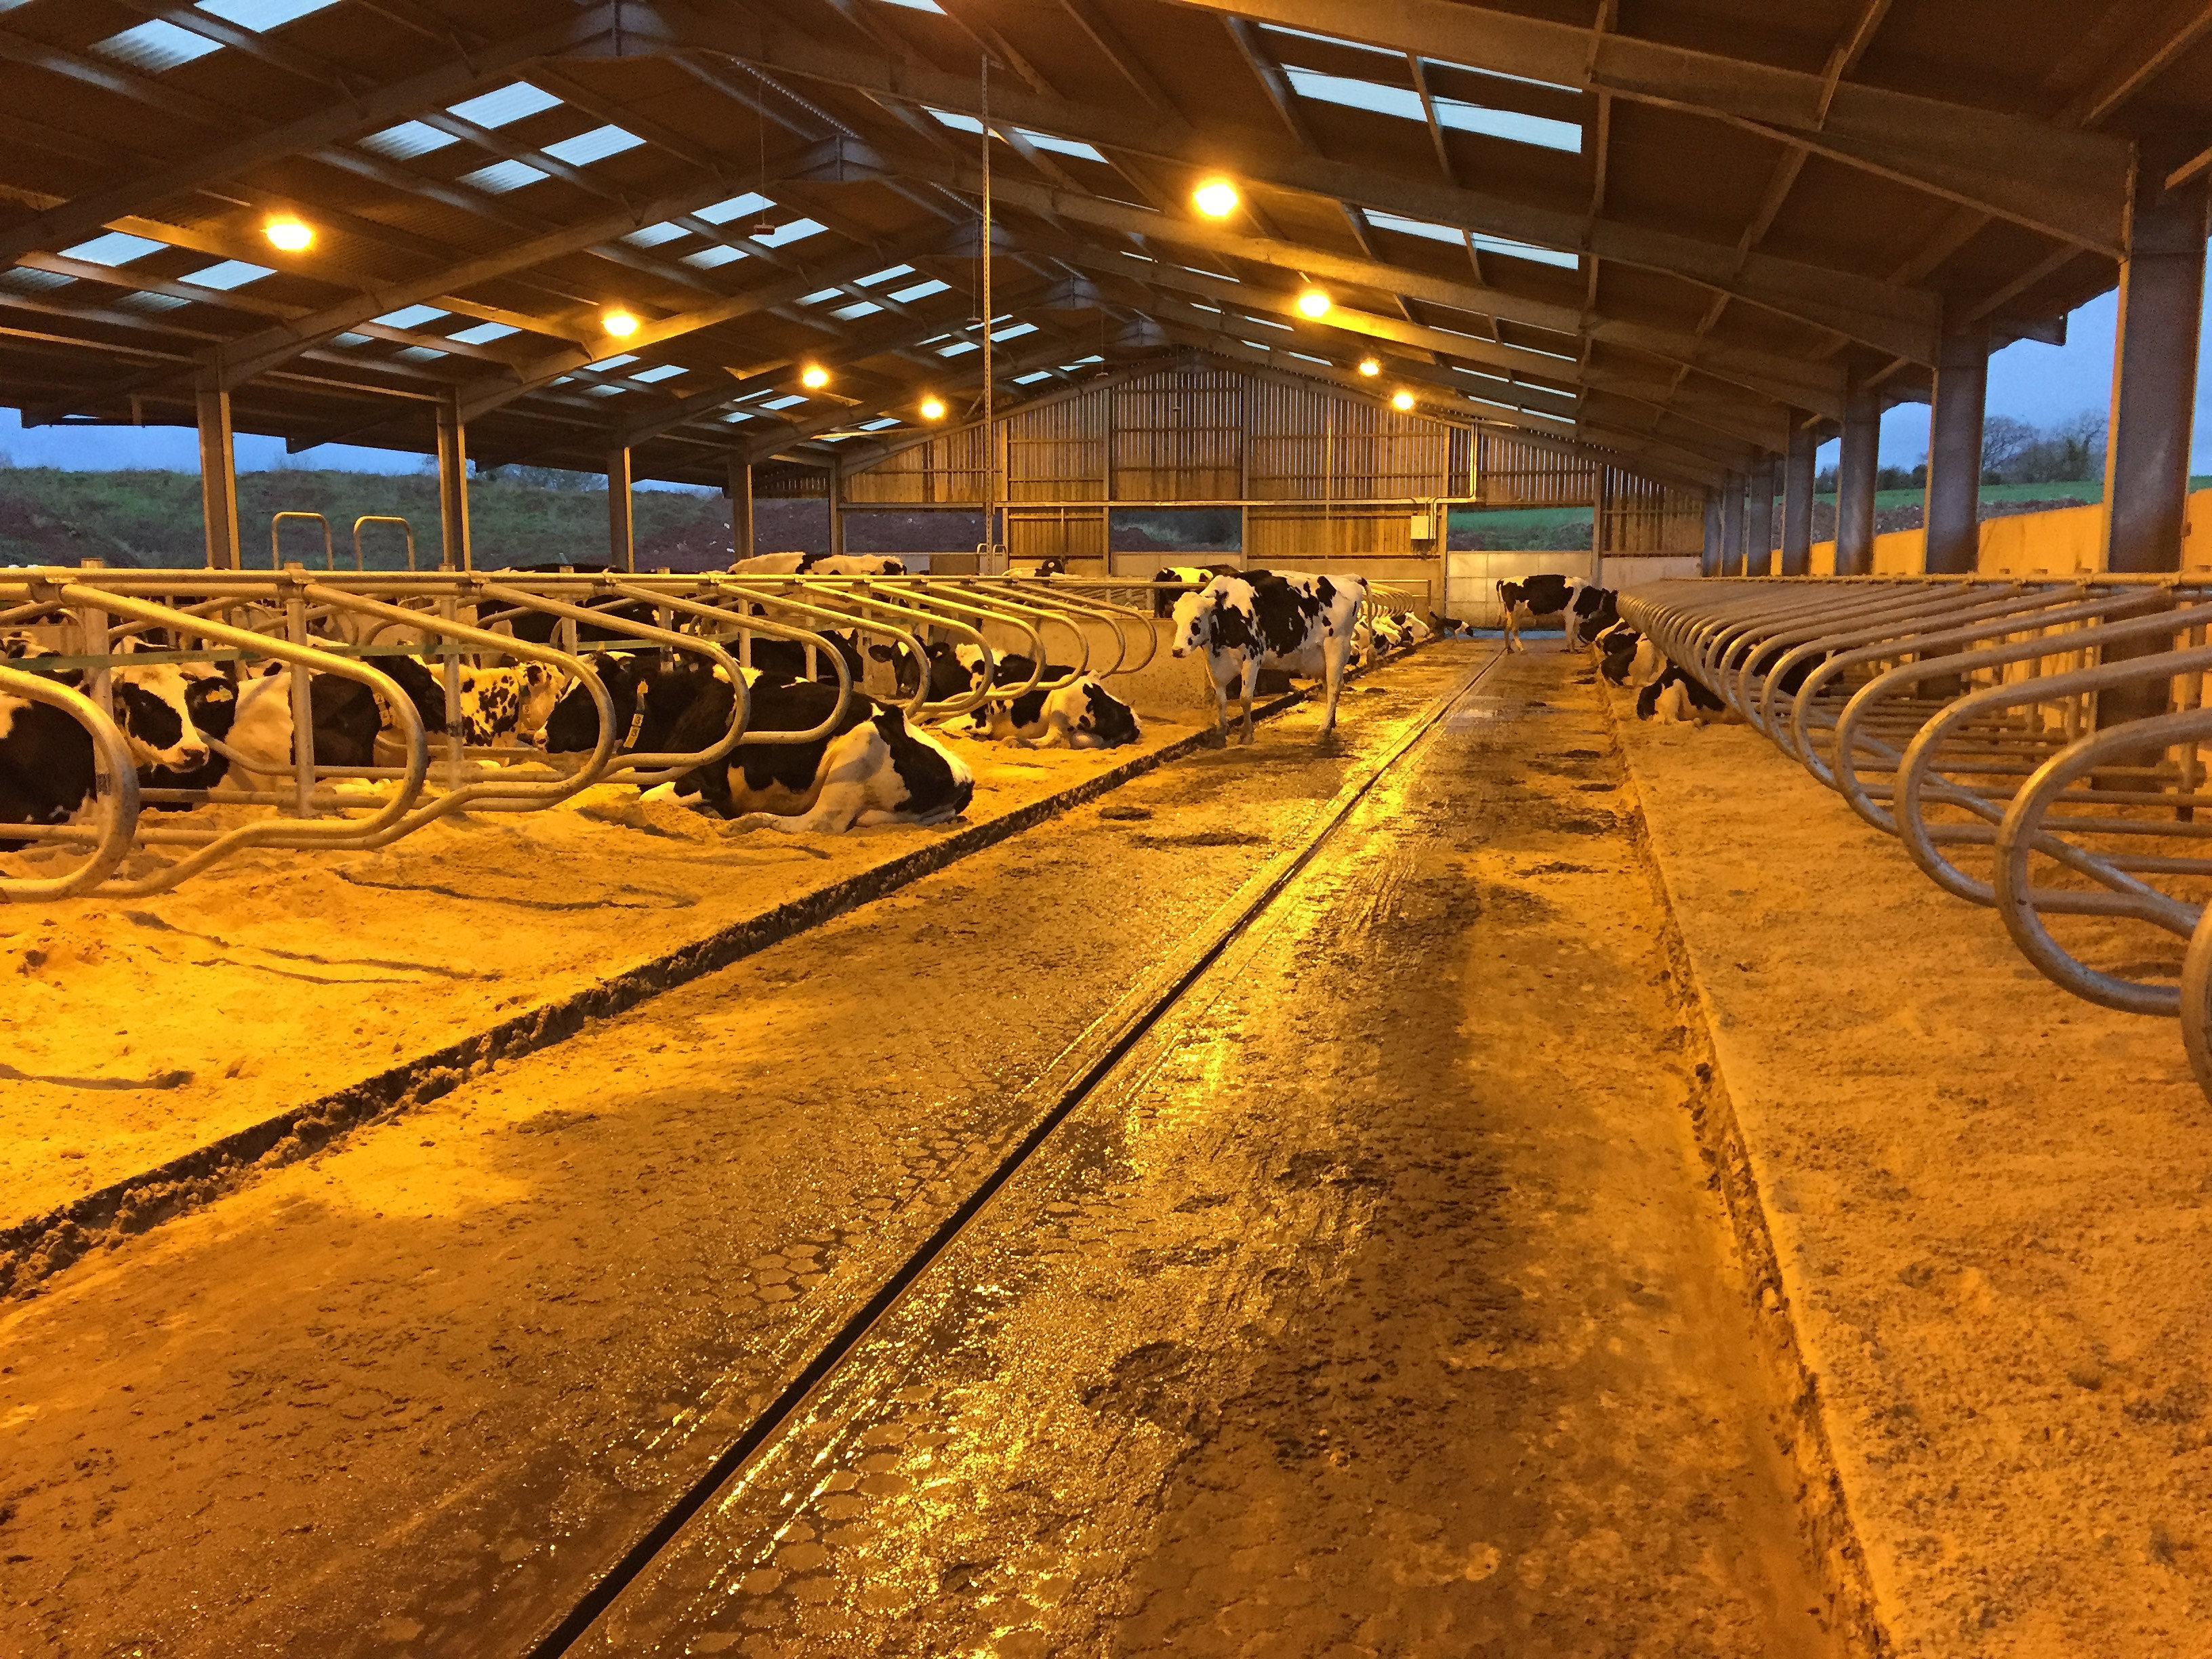 Cowplan South West Uk Dairy Housing With Ivor Davey